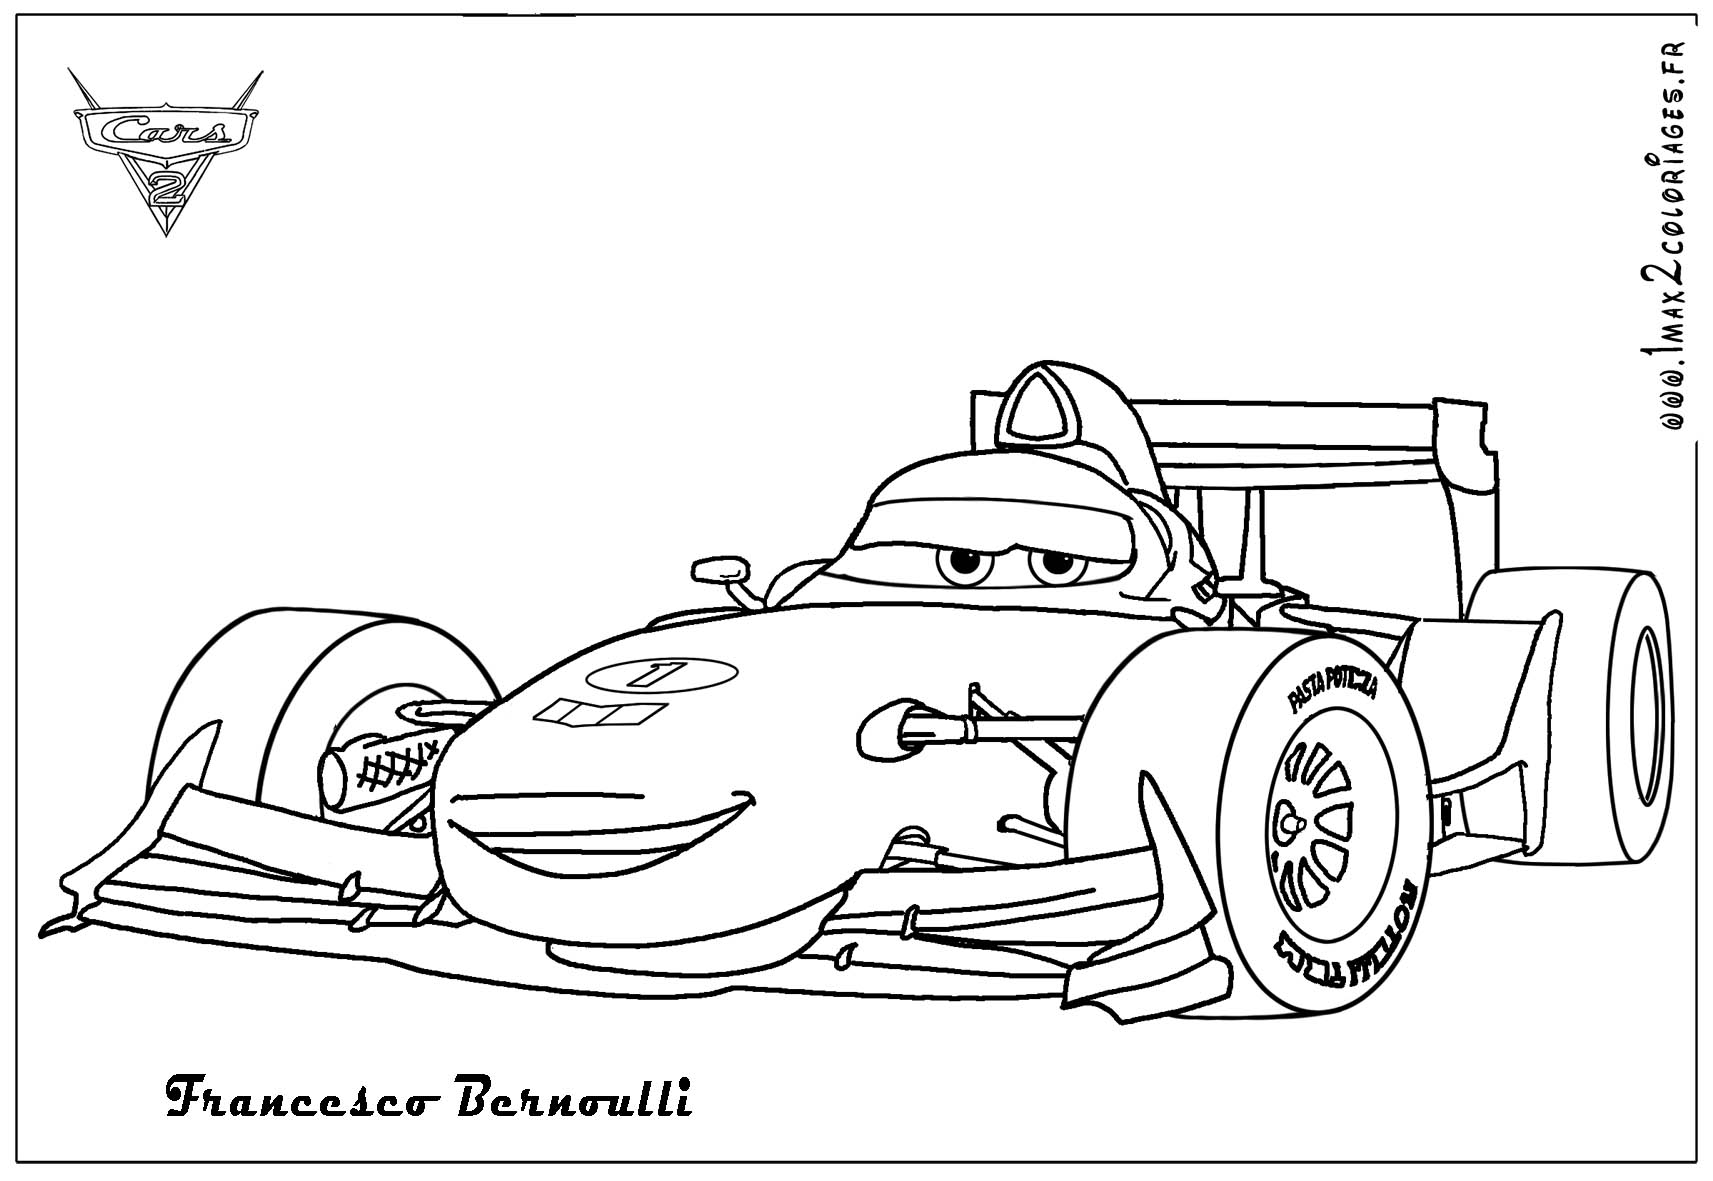 Coloriages cars 2 - Francesco Bernouli Cars 2 - Coloriages ...